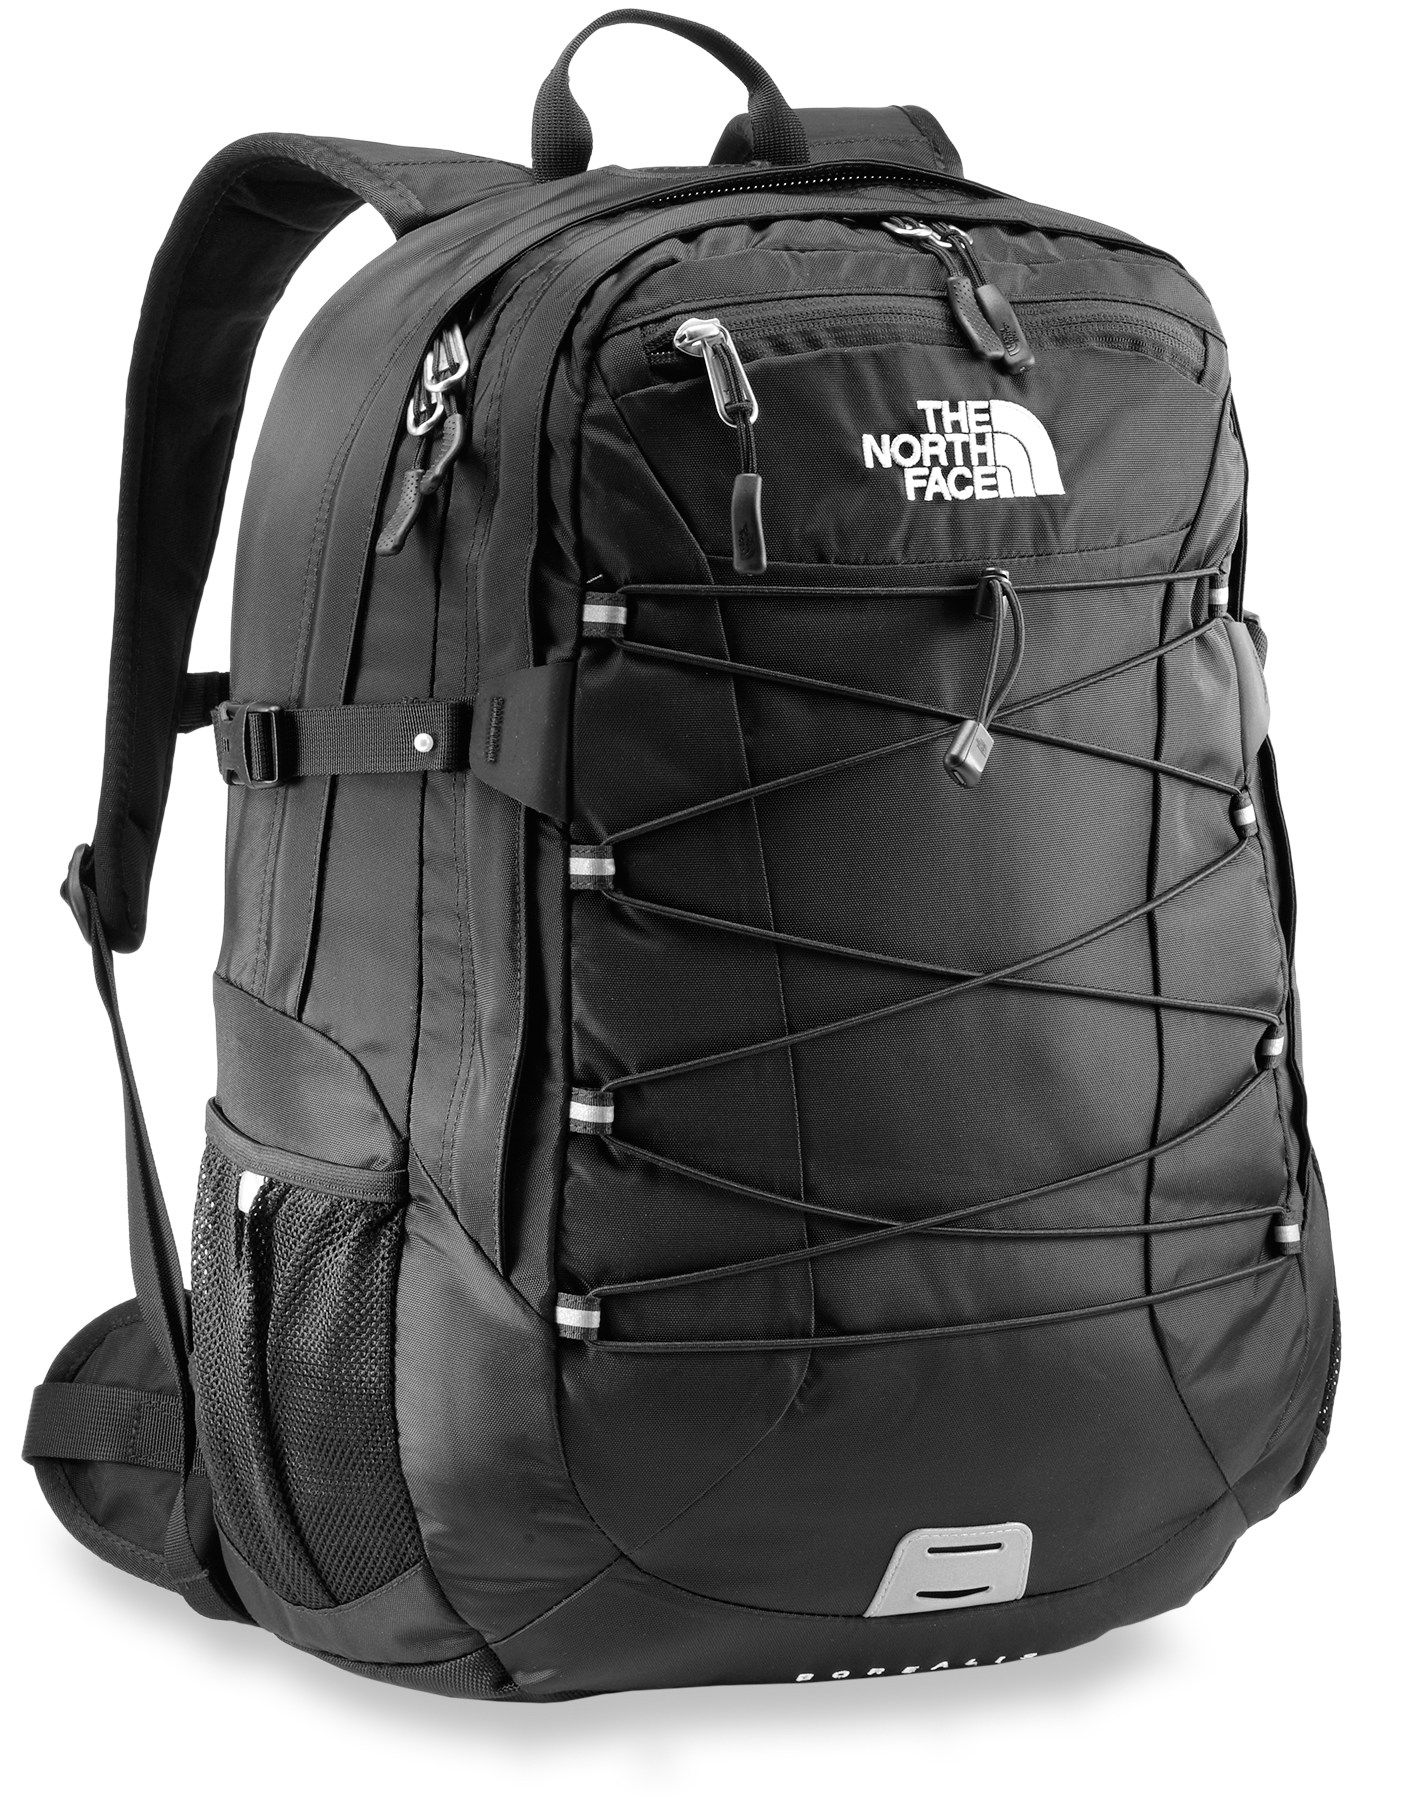 The North Face Borealis Pack - Women's -  at REI.com